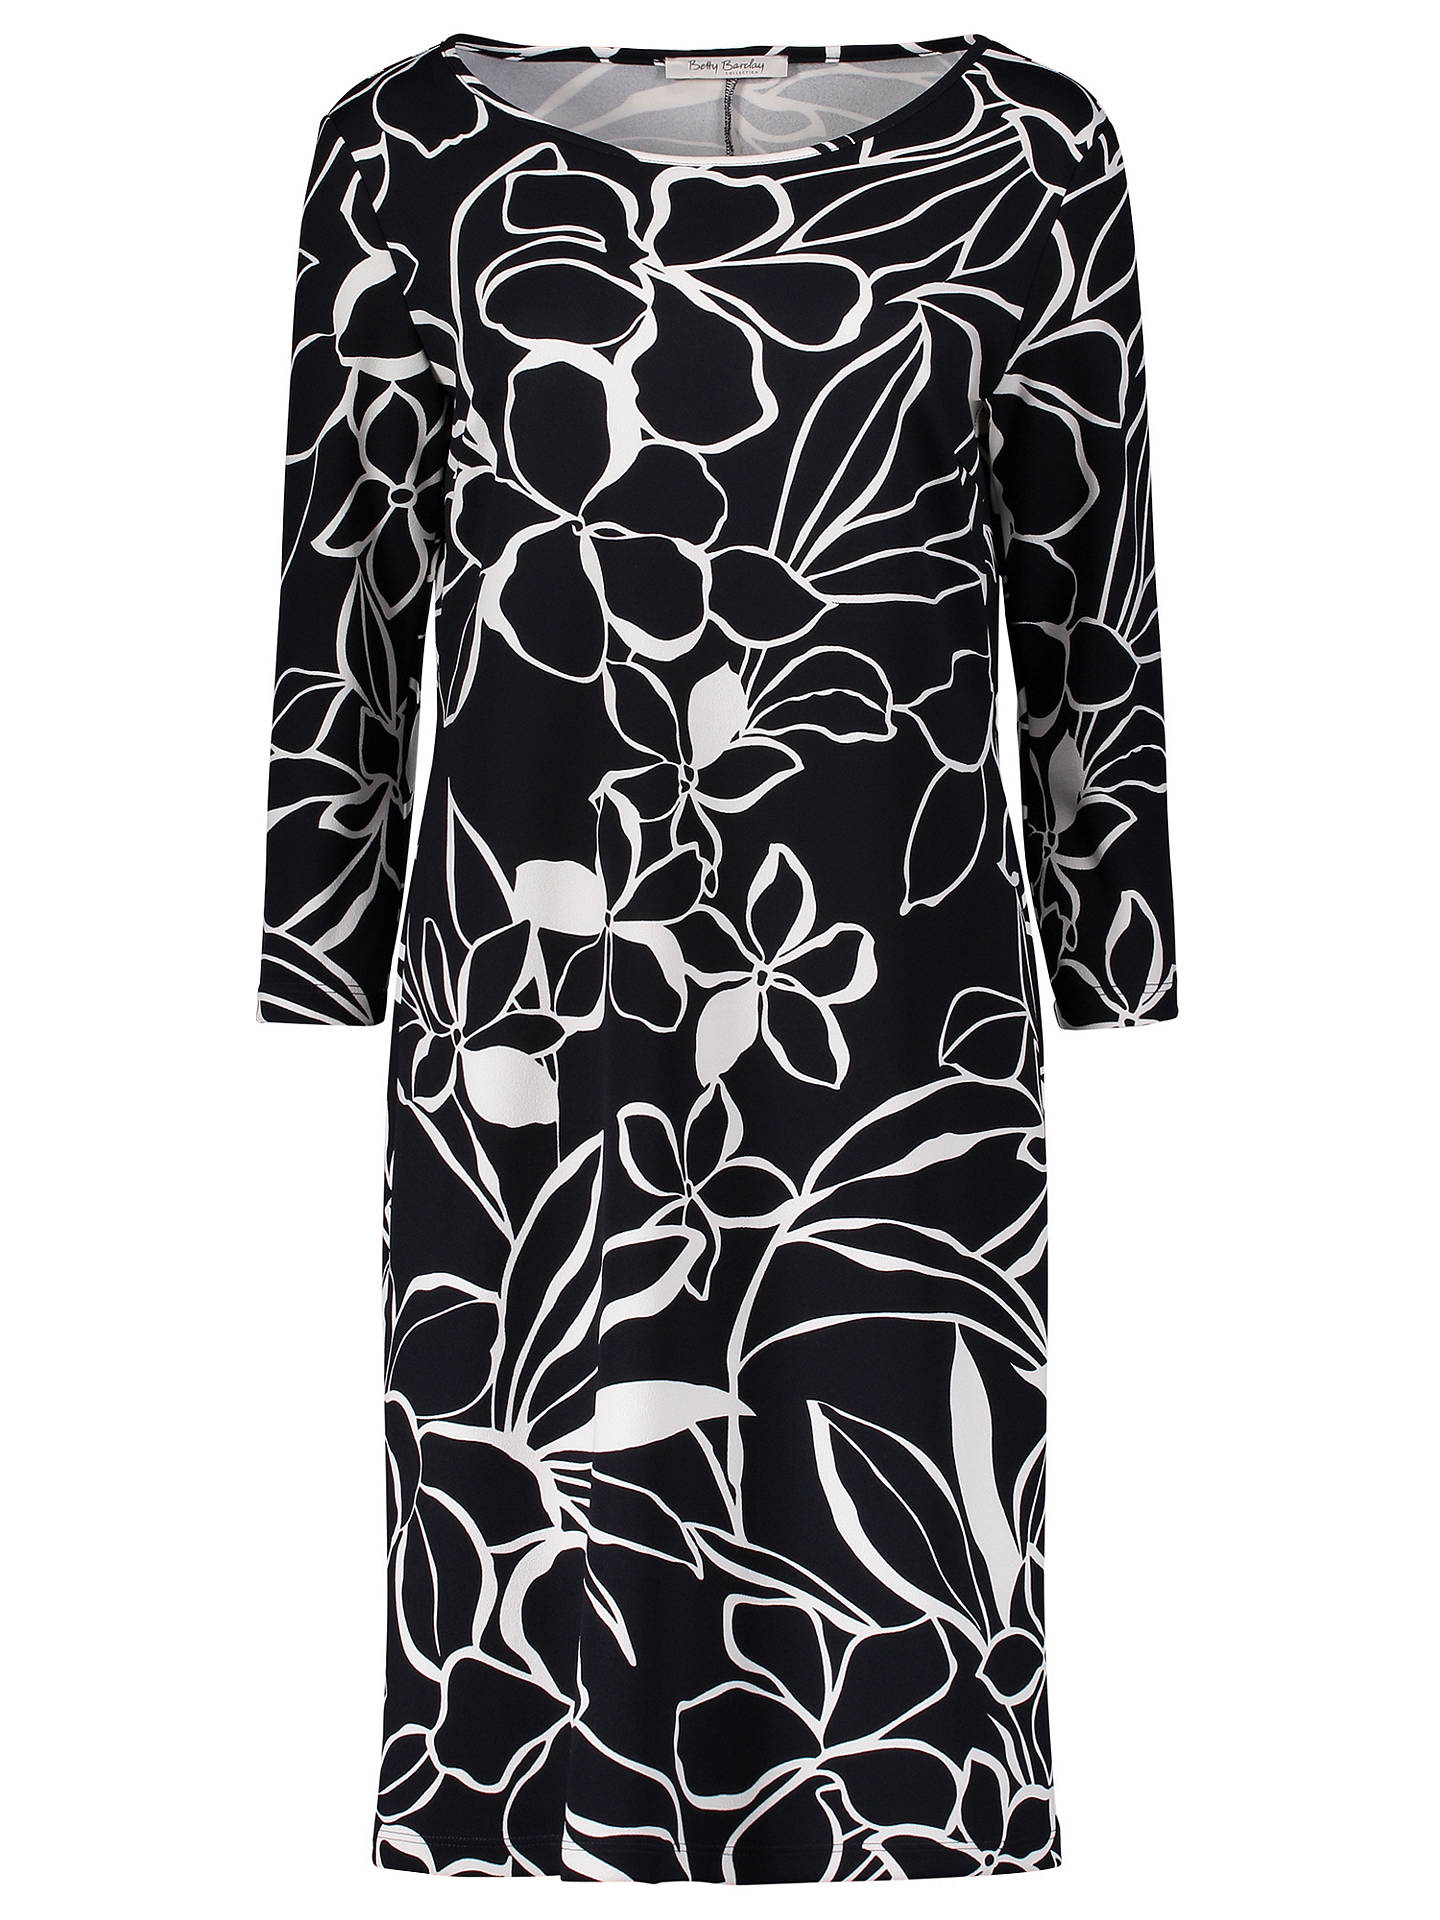 Buy Betty Barclay Floral Print Jersey Dress, Black/Multi, 10 Online at johnlewis.com